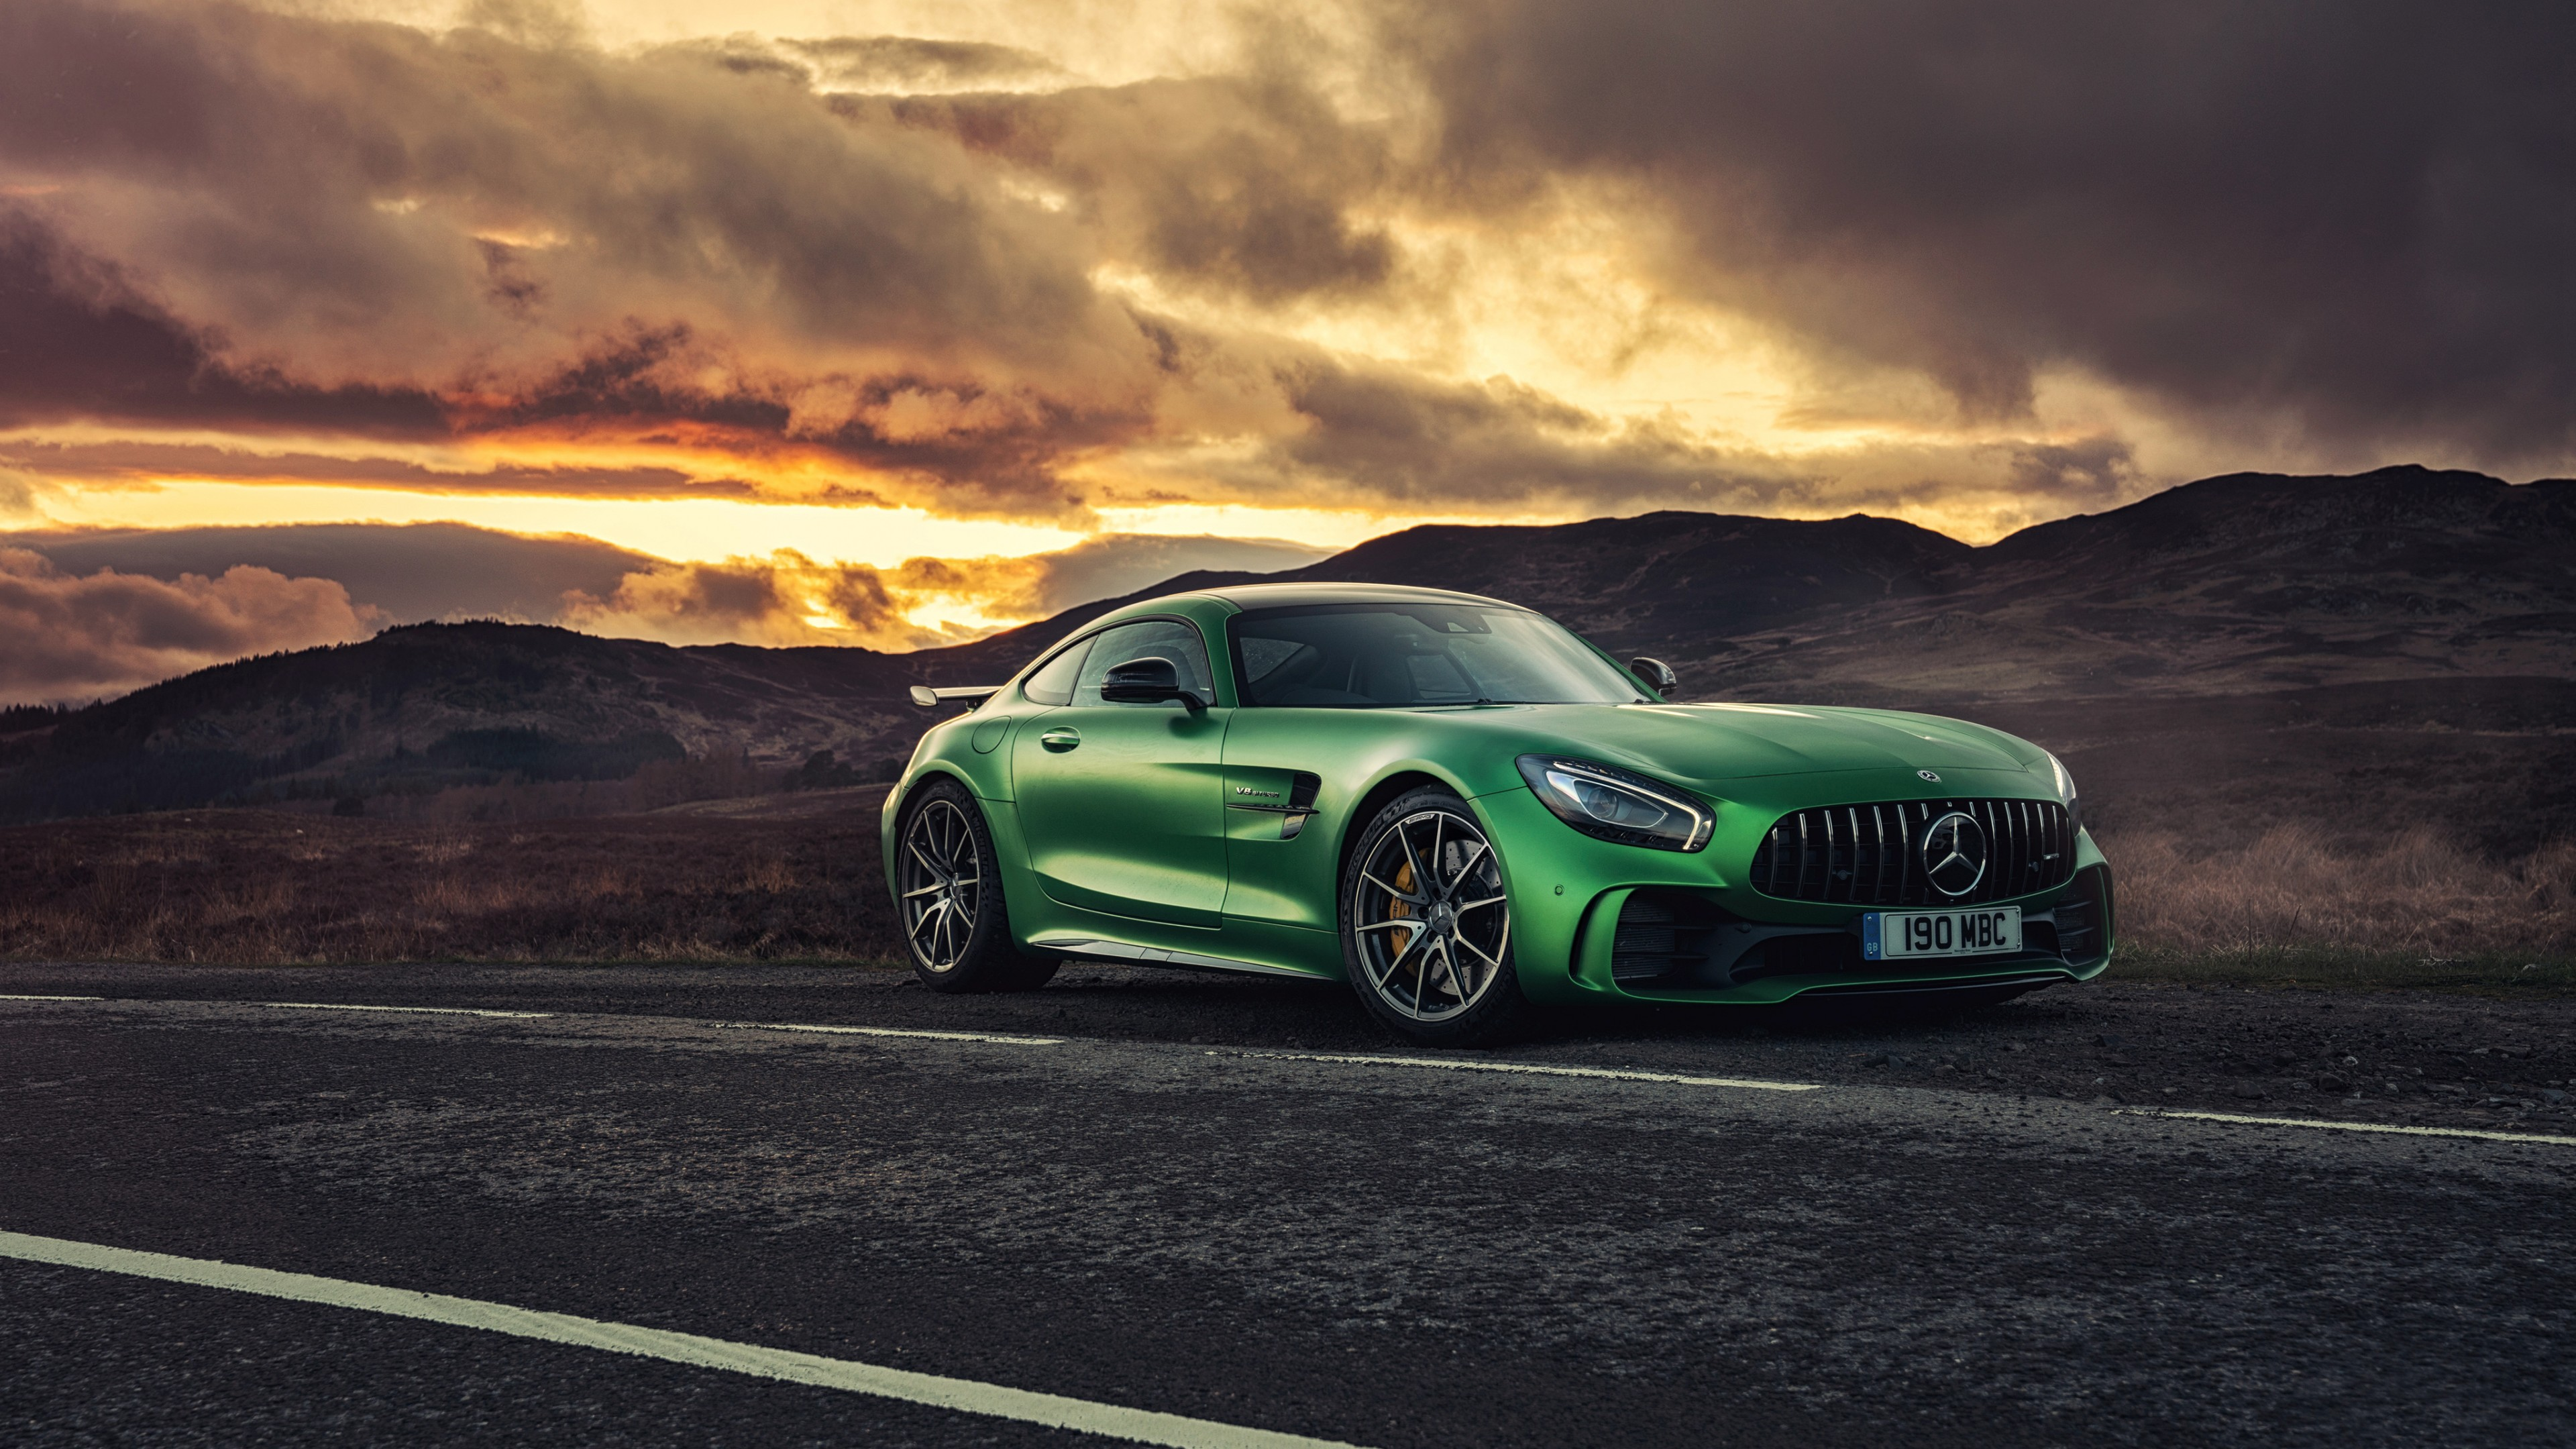 mercedes amg gt r 2017 4k wallpaper hd car wallpapers id 7770. Black Bedroom Furniture Sets. Home Design Ideas